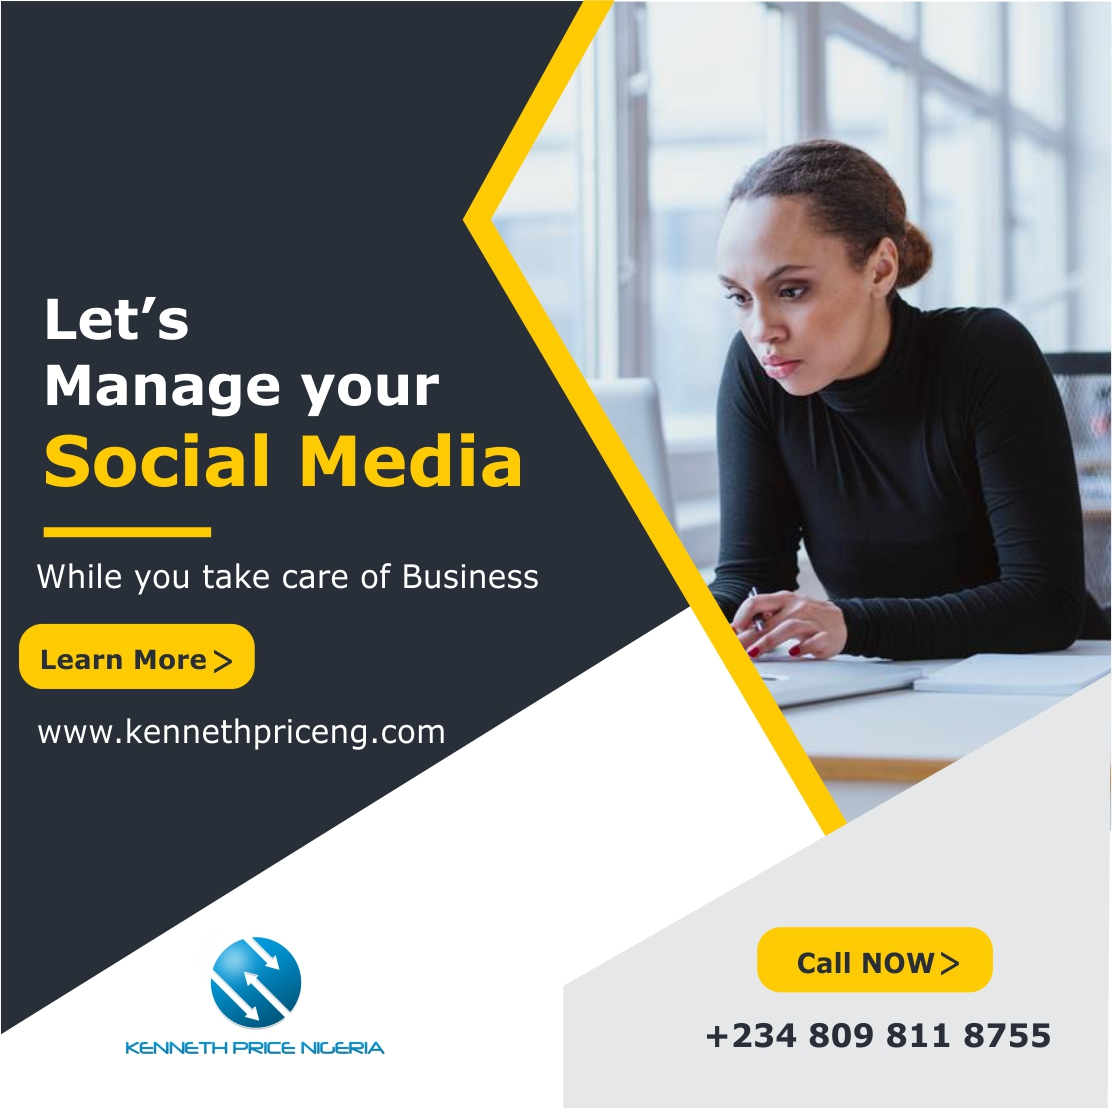 Responding to fans and followers on your Social Media platforms is an important part of Social Media Management. It presents a new opportunity for you to provide value for your leads while also demonstrating excellent customer service.  #DigitalMarketingAgency in #Abuja pic.twitter.com/E5yDw7mBfL